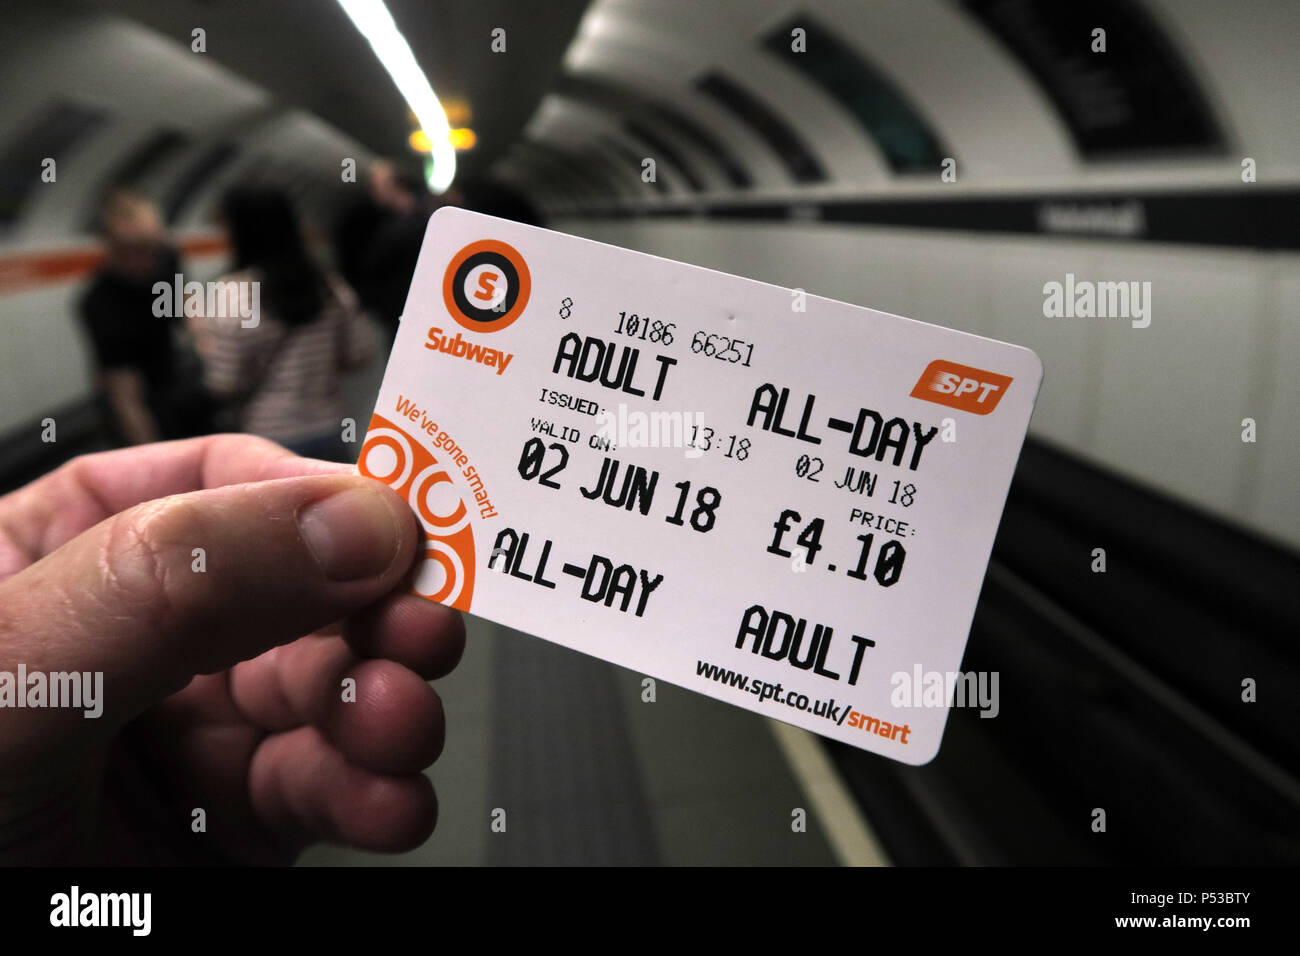 Glasgow subway All Day Smartcard, SPT underground railway, city centre train / railway, Strathclyde, Scotland, UK - Stock Image